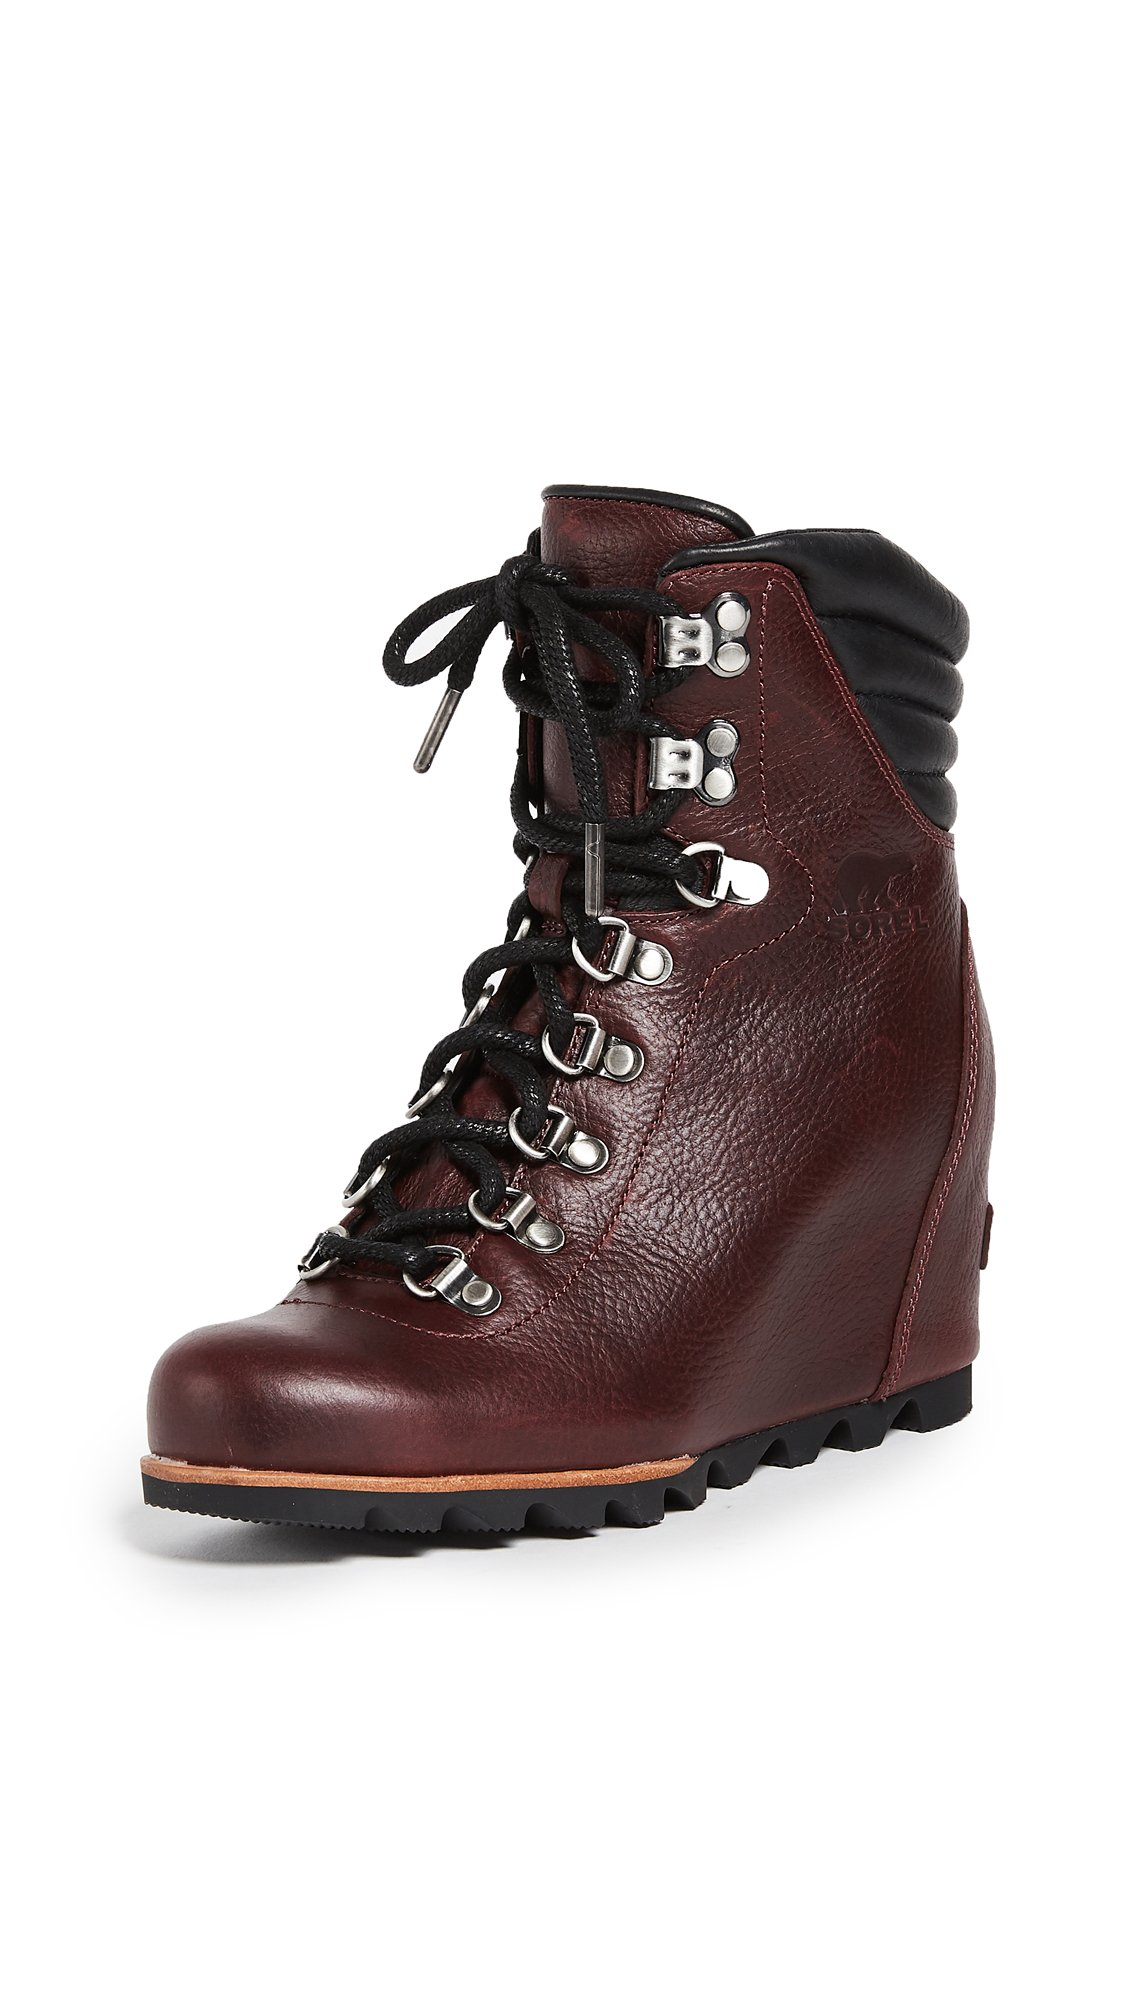 Sorel Women's Conquest Wedge Luxe Booties, Rich Wine/Black, 9 B(M) US